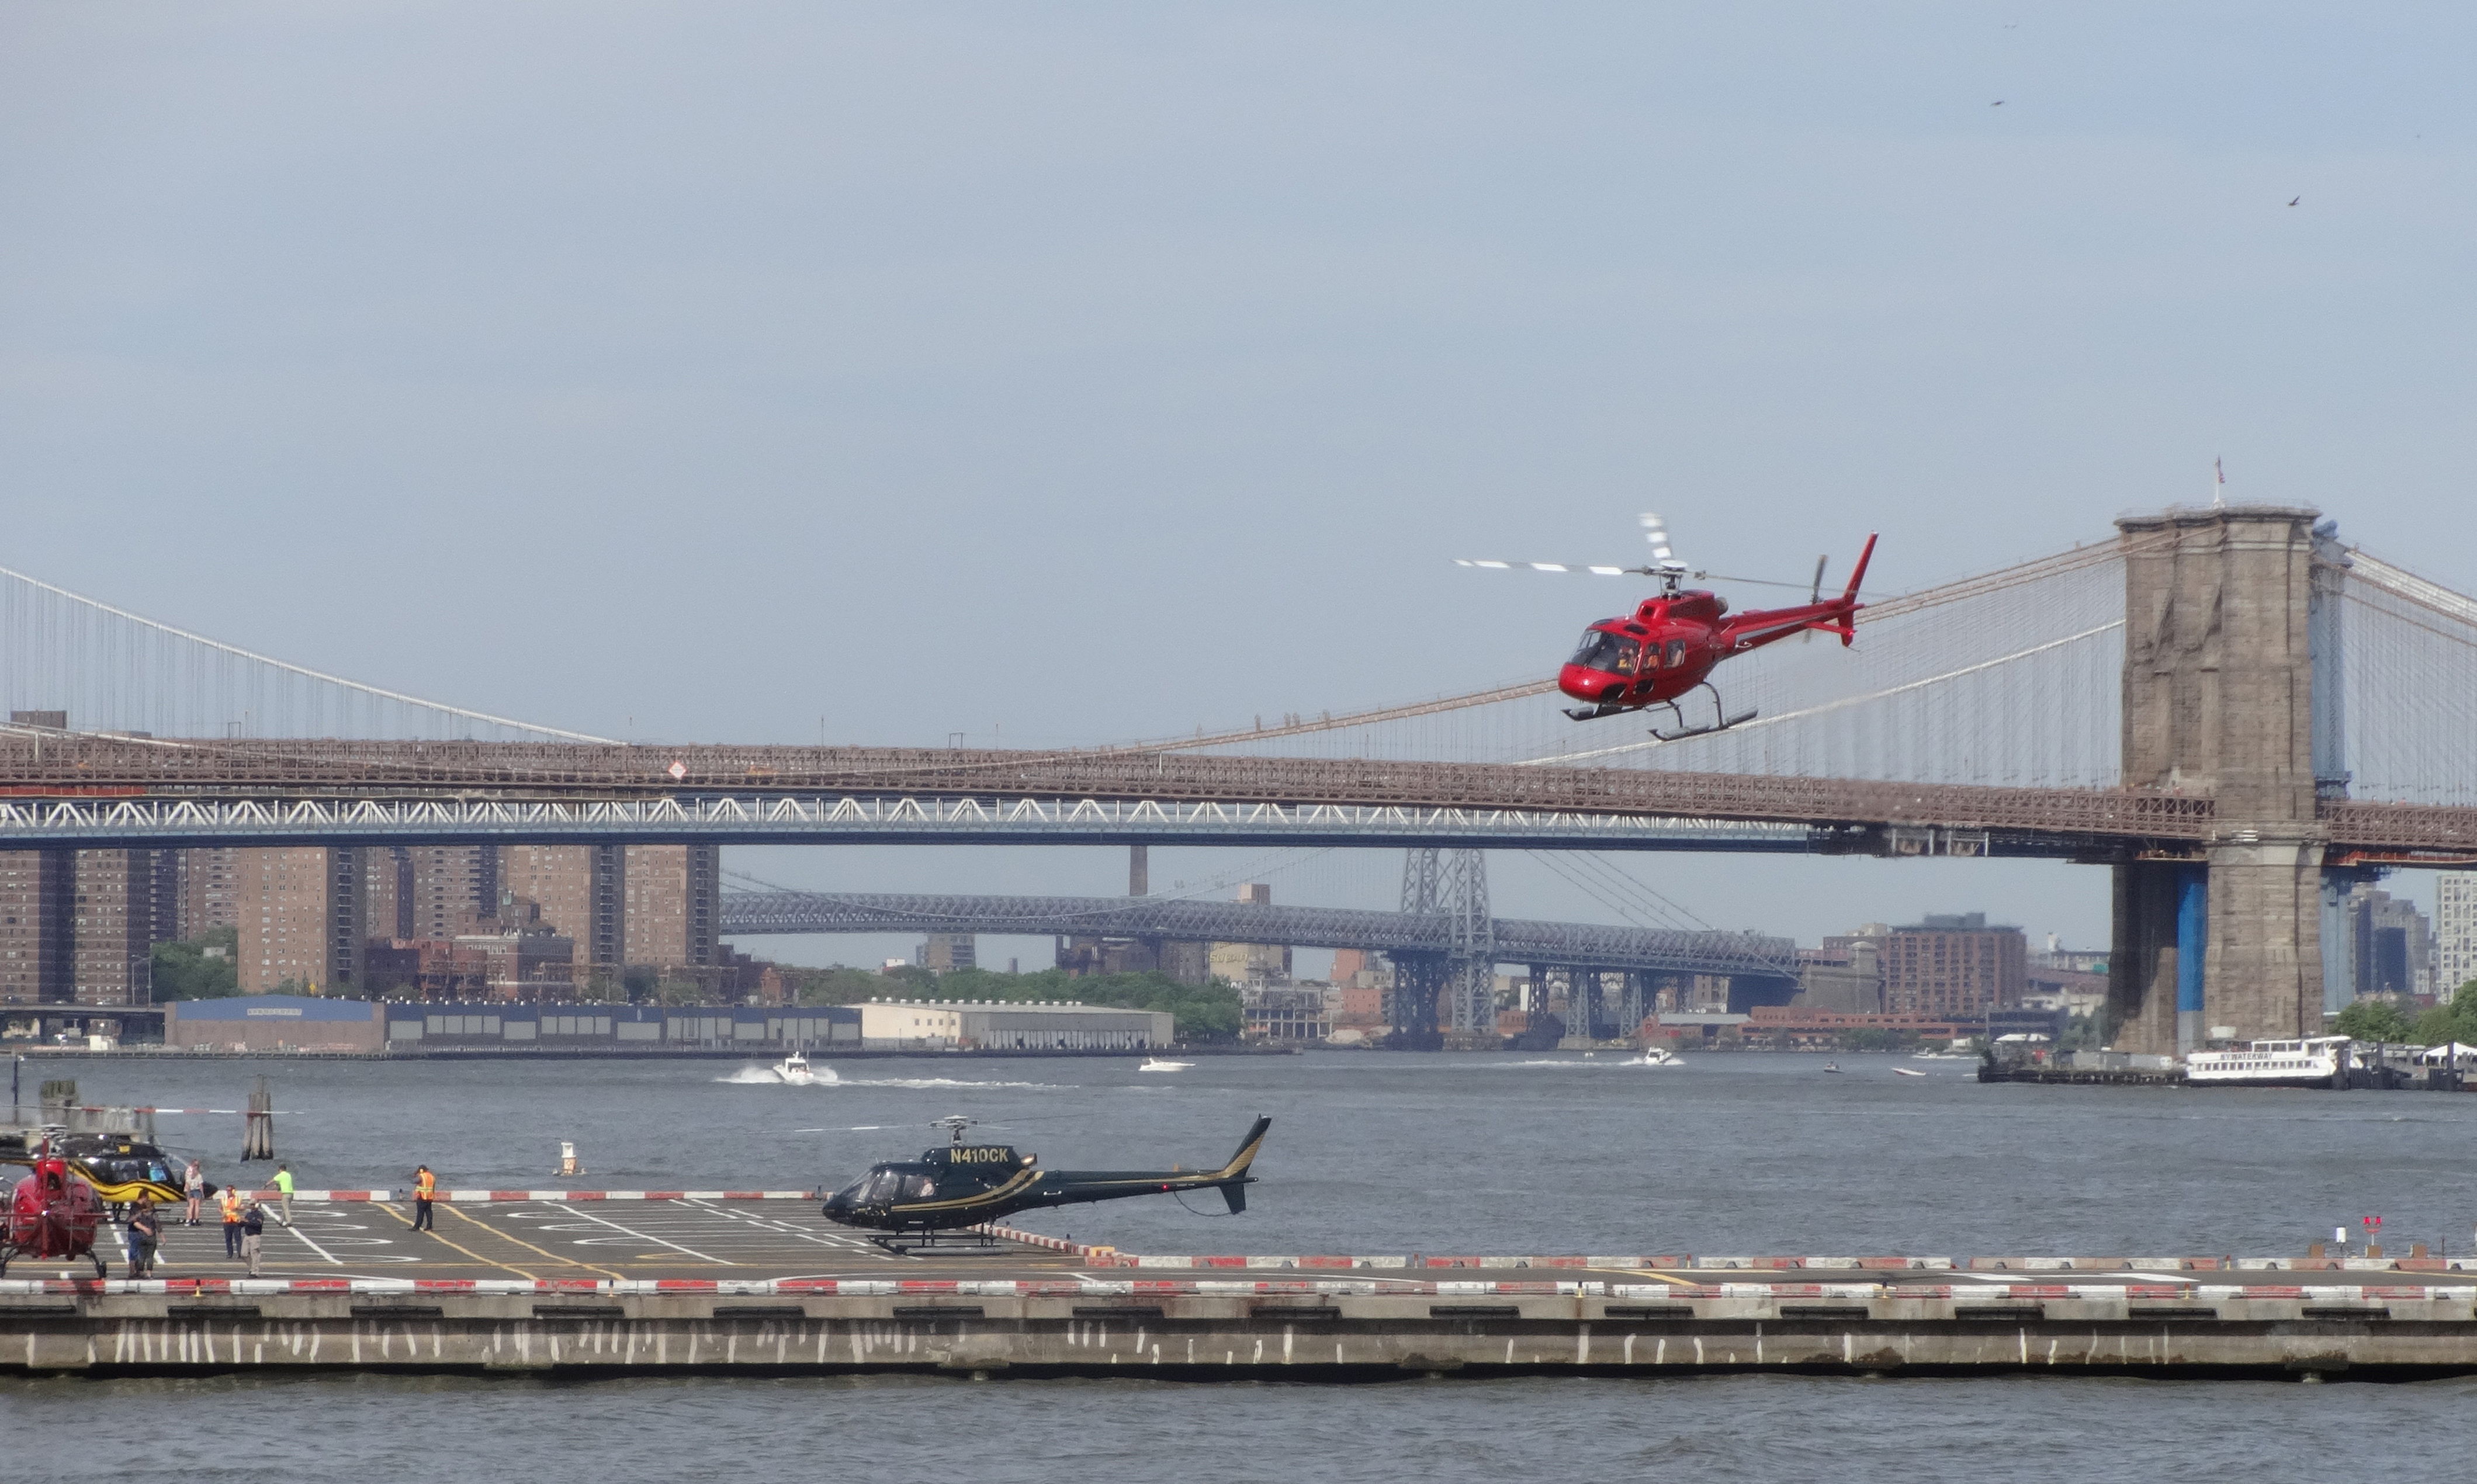 Tourist helicopters Seaport 5-26-2014